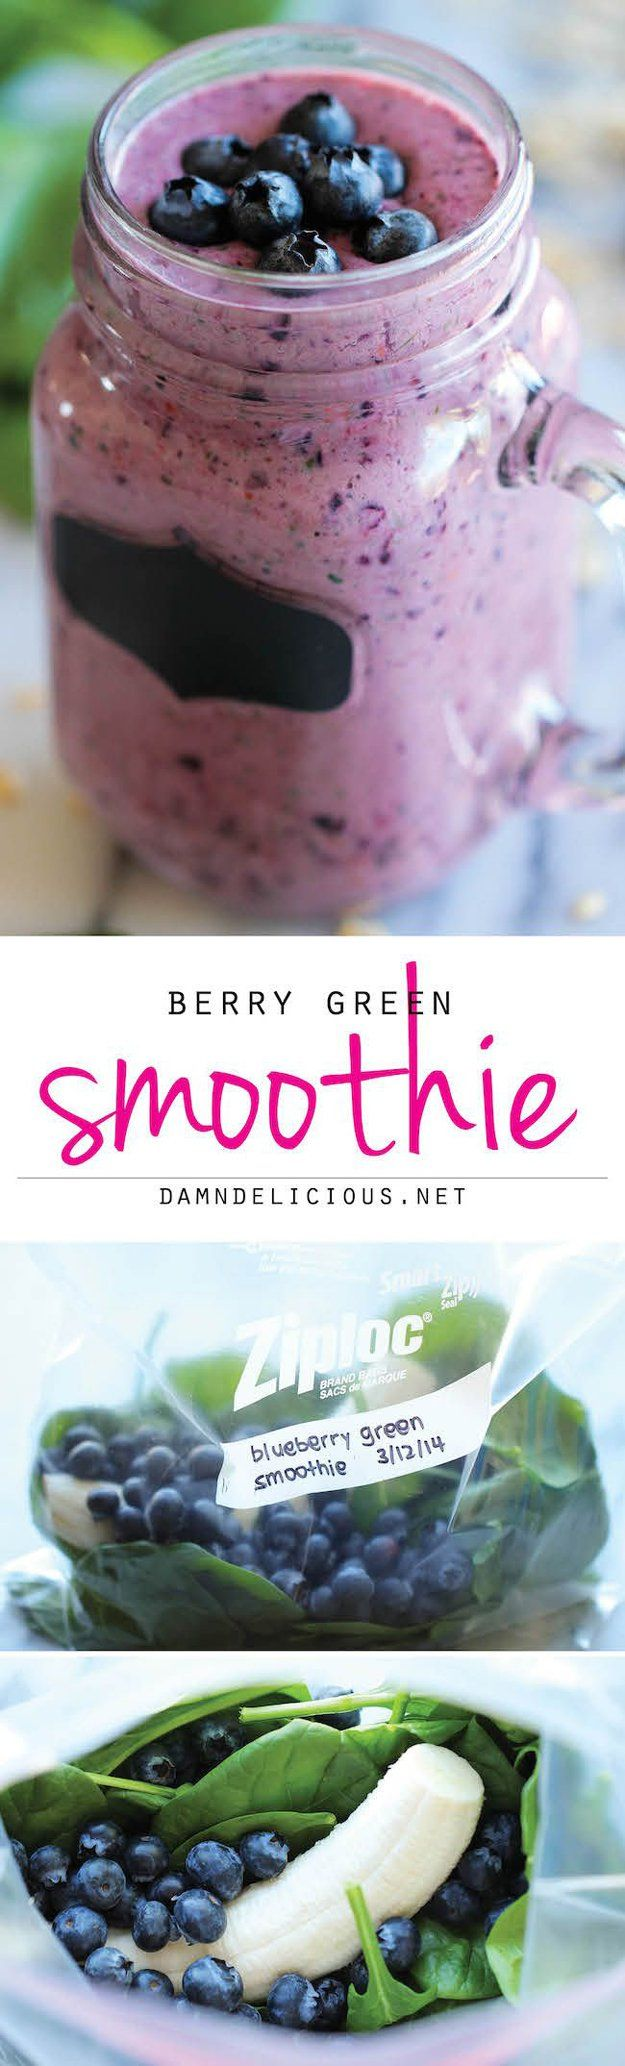 Best DIY Smoothie Recipe | diyready.com/19-healthy-smoothies-that-do-the-body-good/